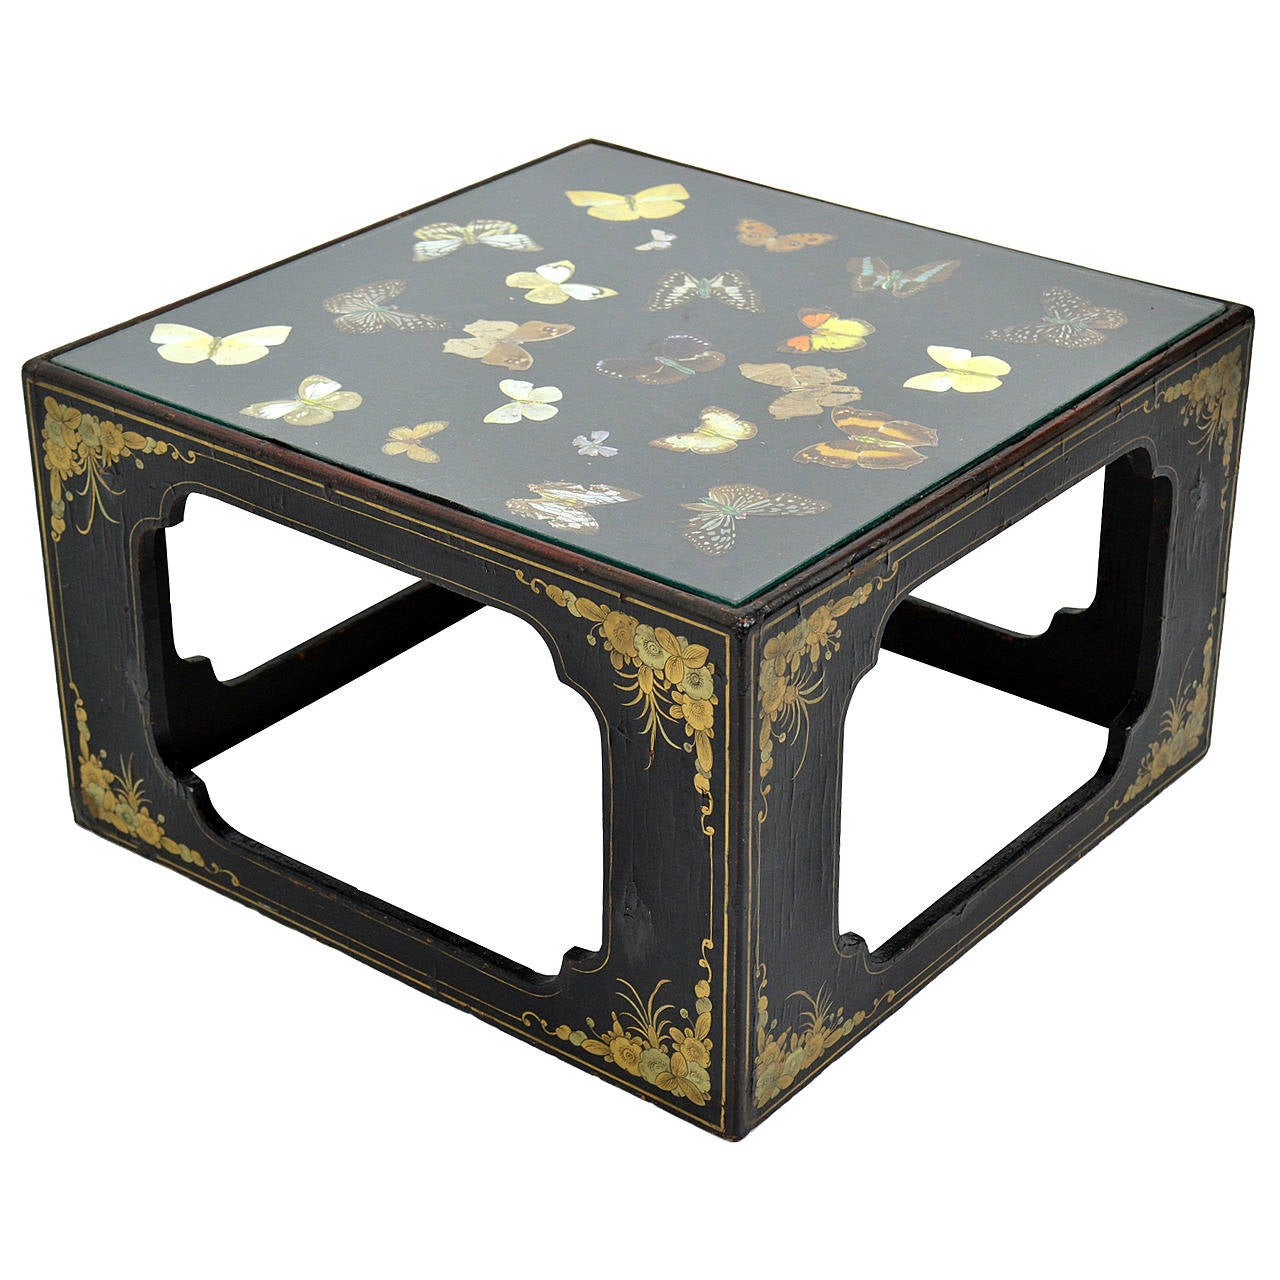 Japanned Edwardian Butterfly Specimen Display Case Or End Table, Circa 1905